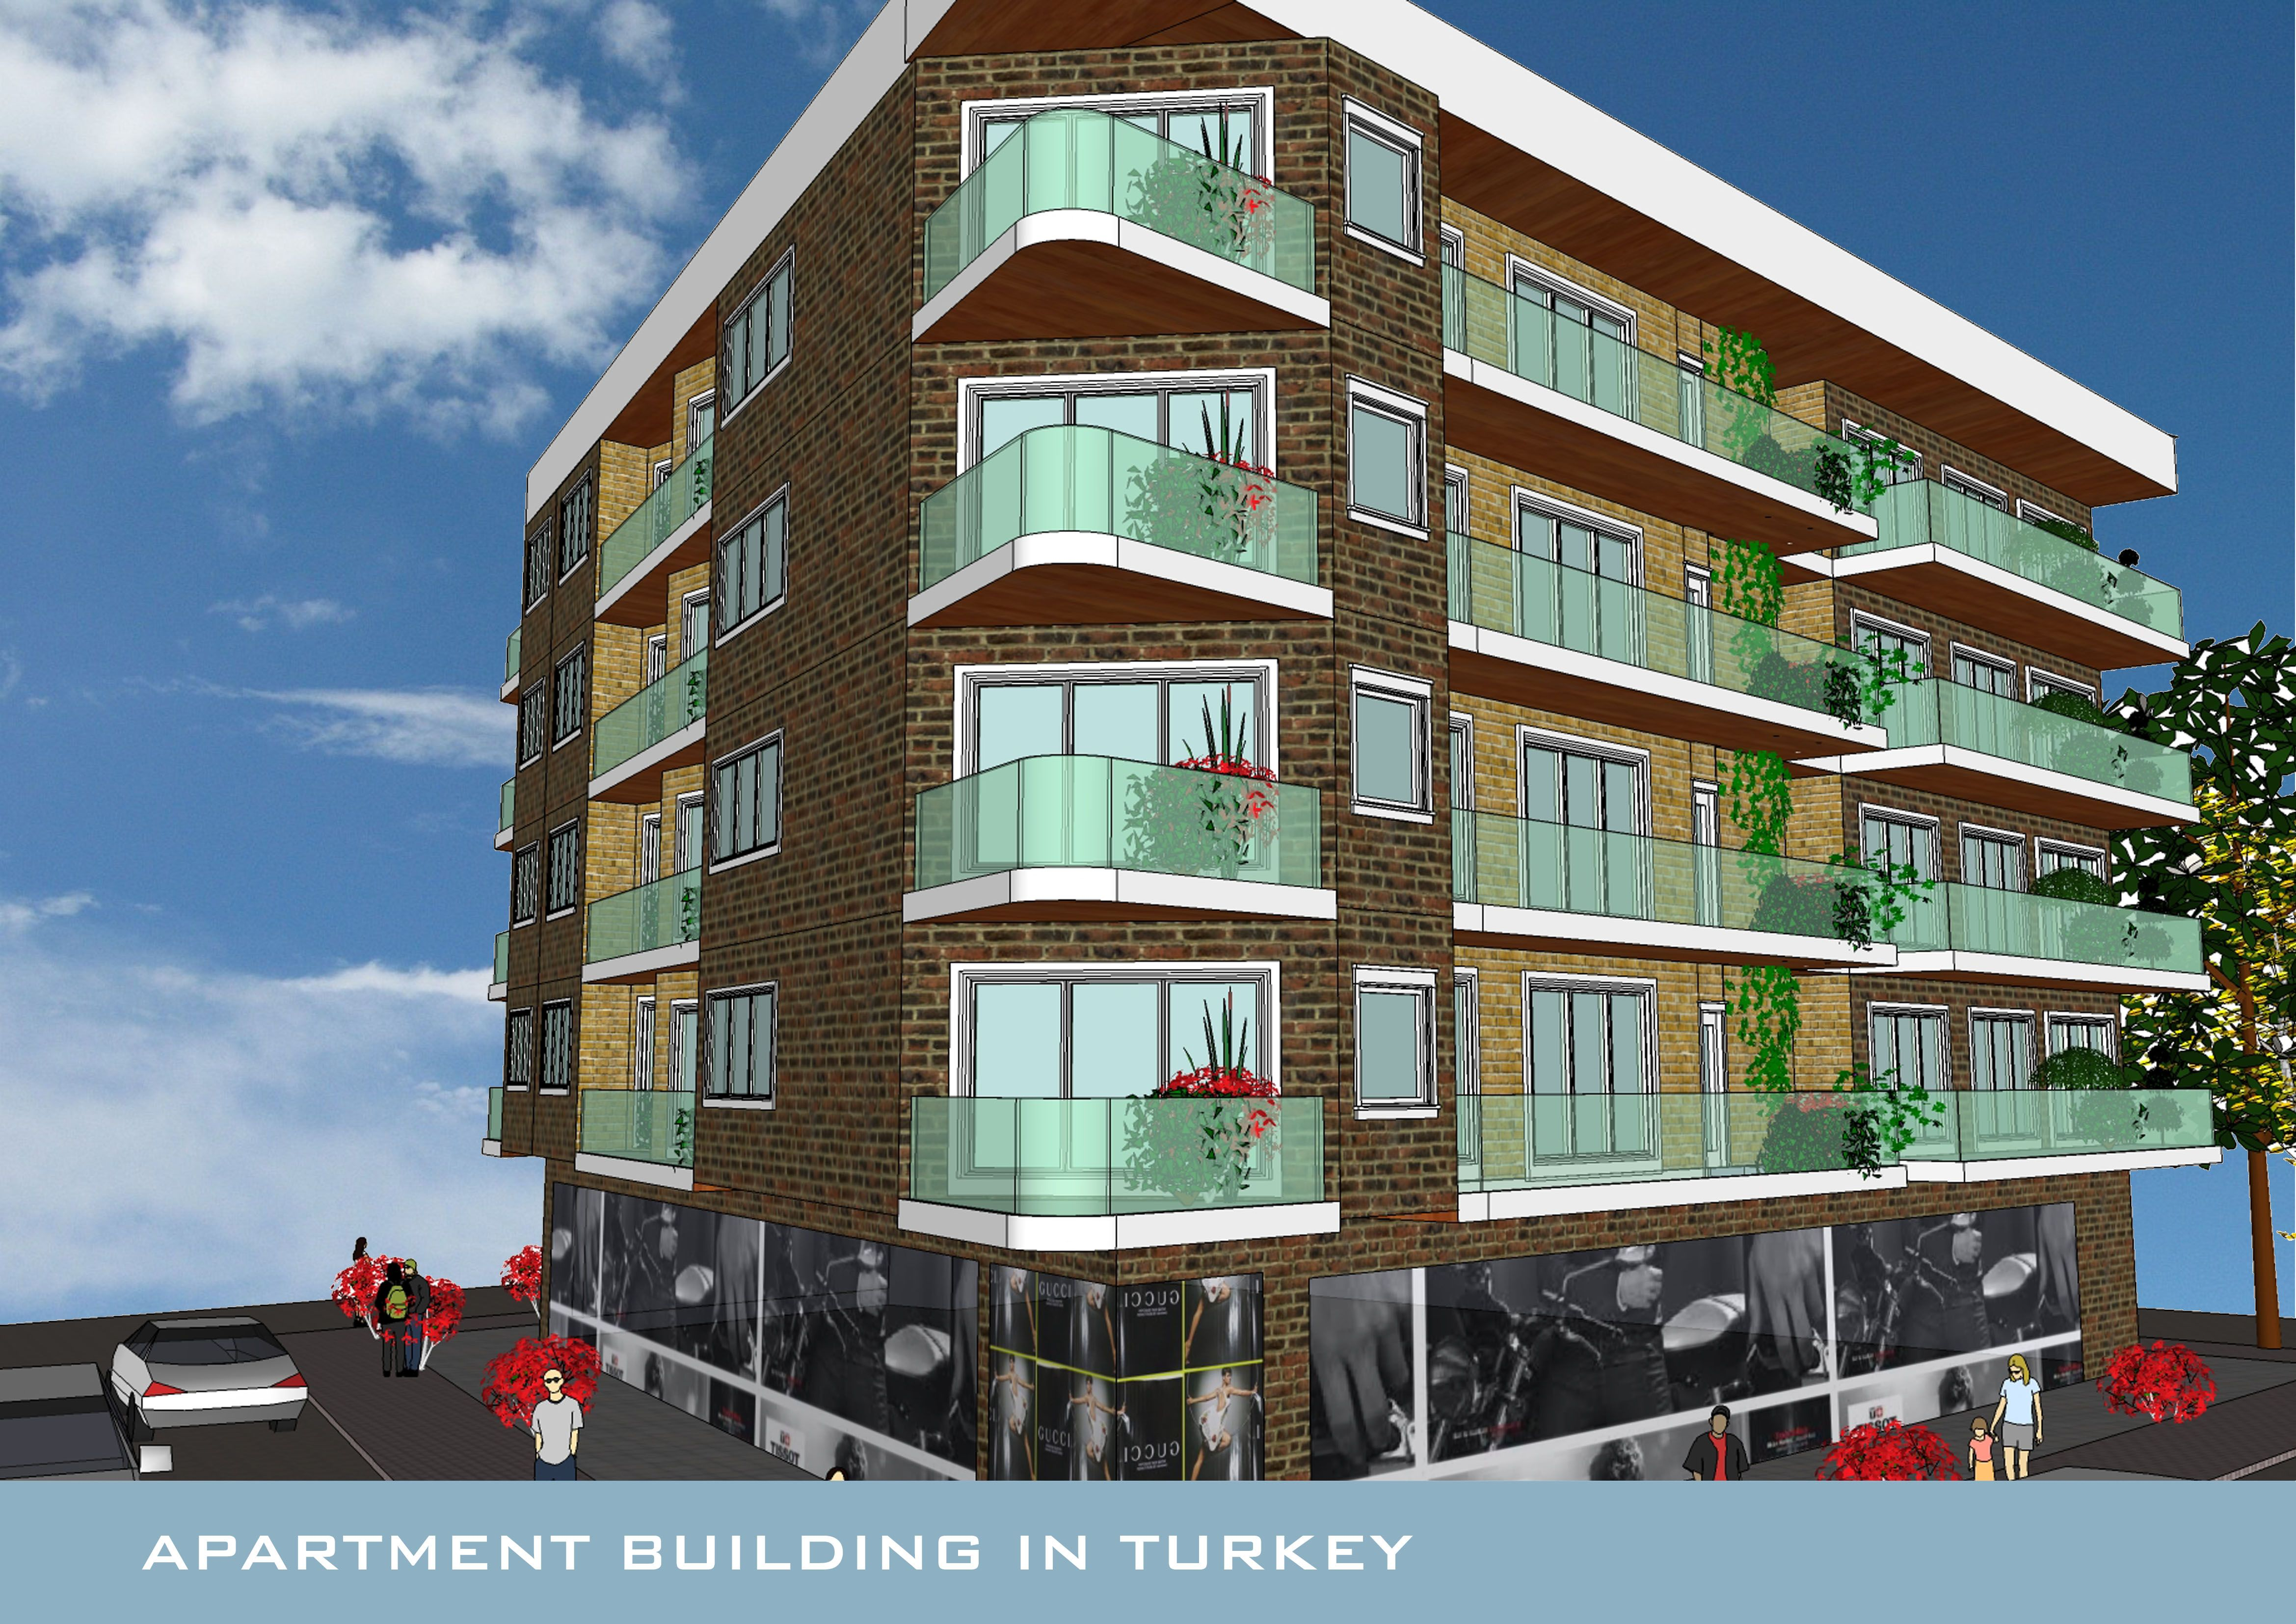 fantastic apartment complex blueprints. Apartment Building Plans Project designed by Reuben Dsouza  in Turkey Aksaray commercial kitchens residential homes